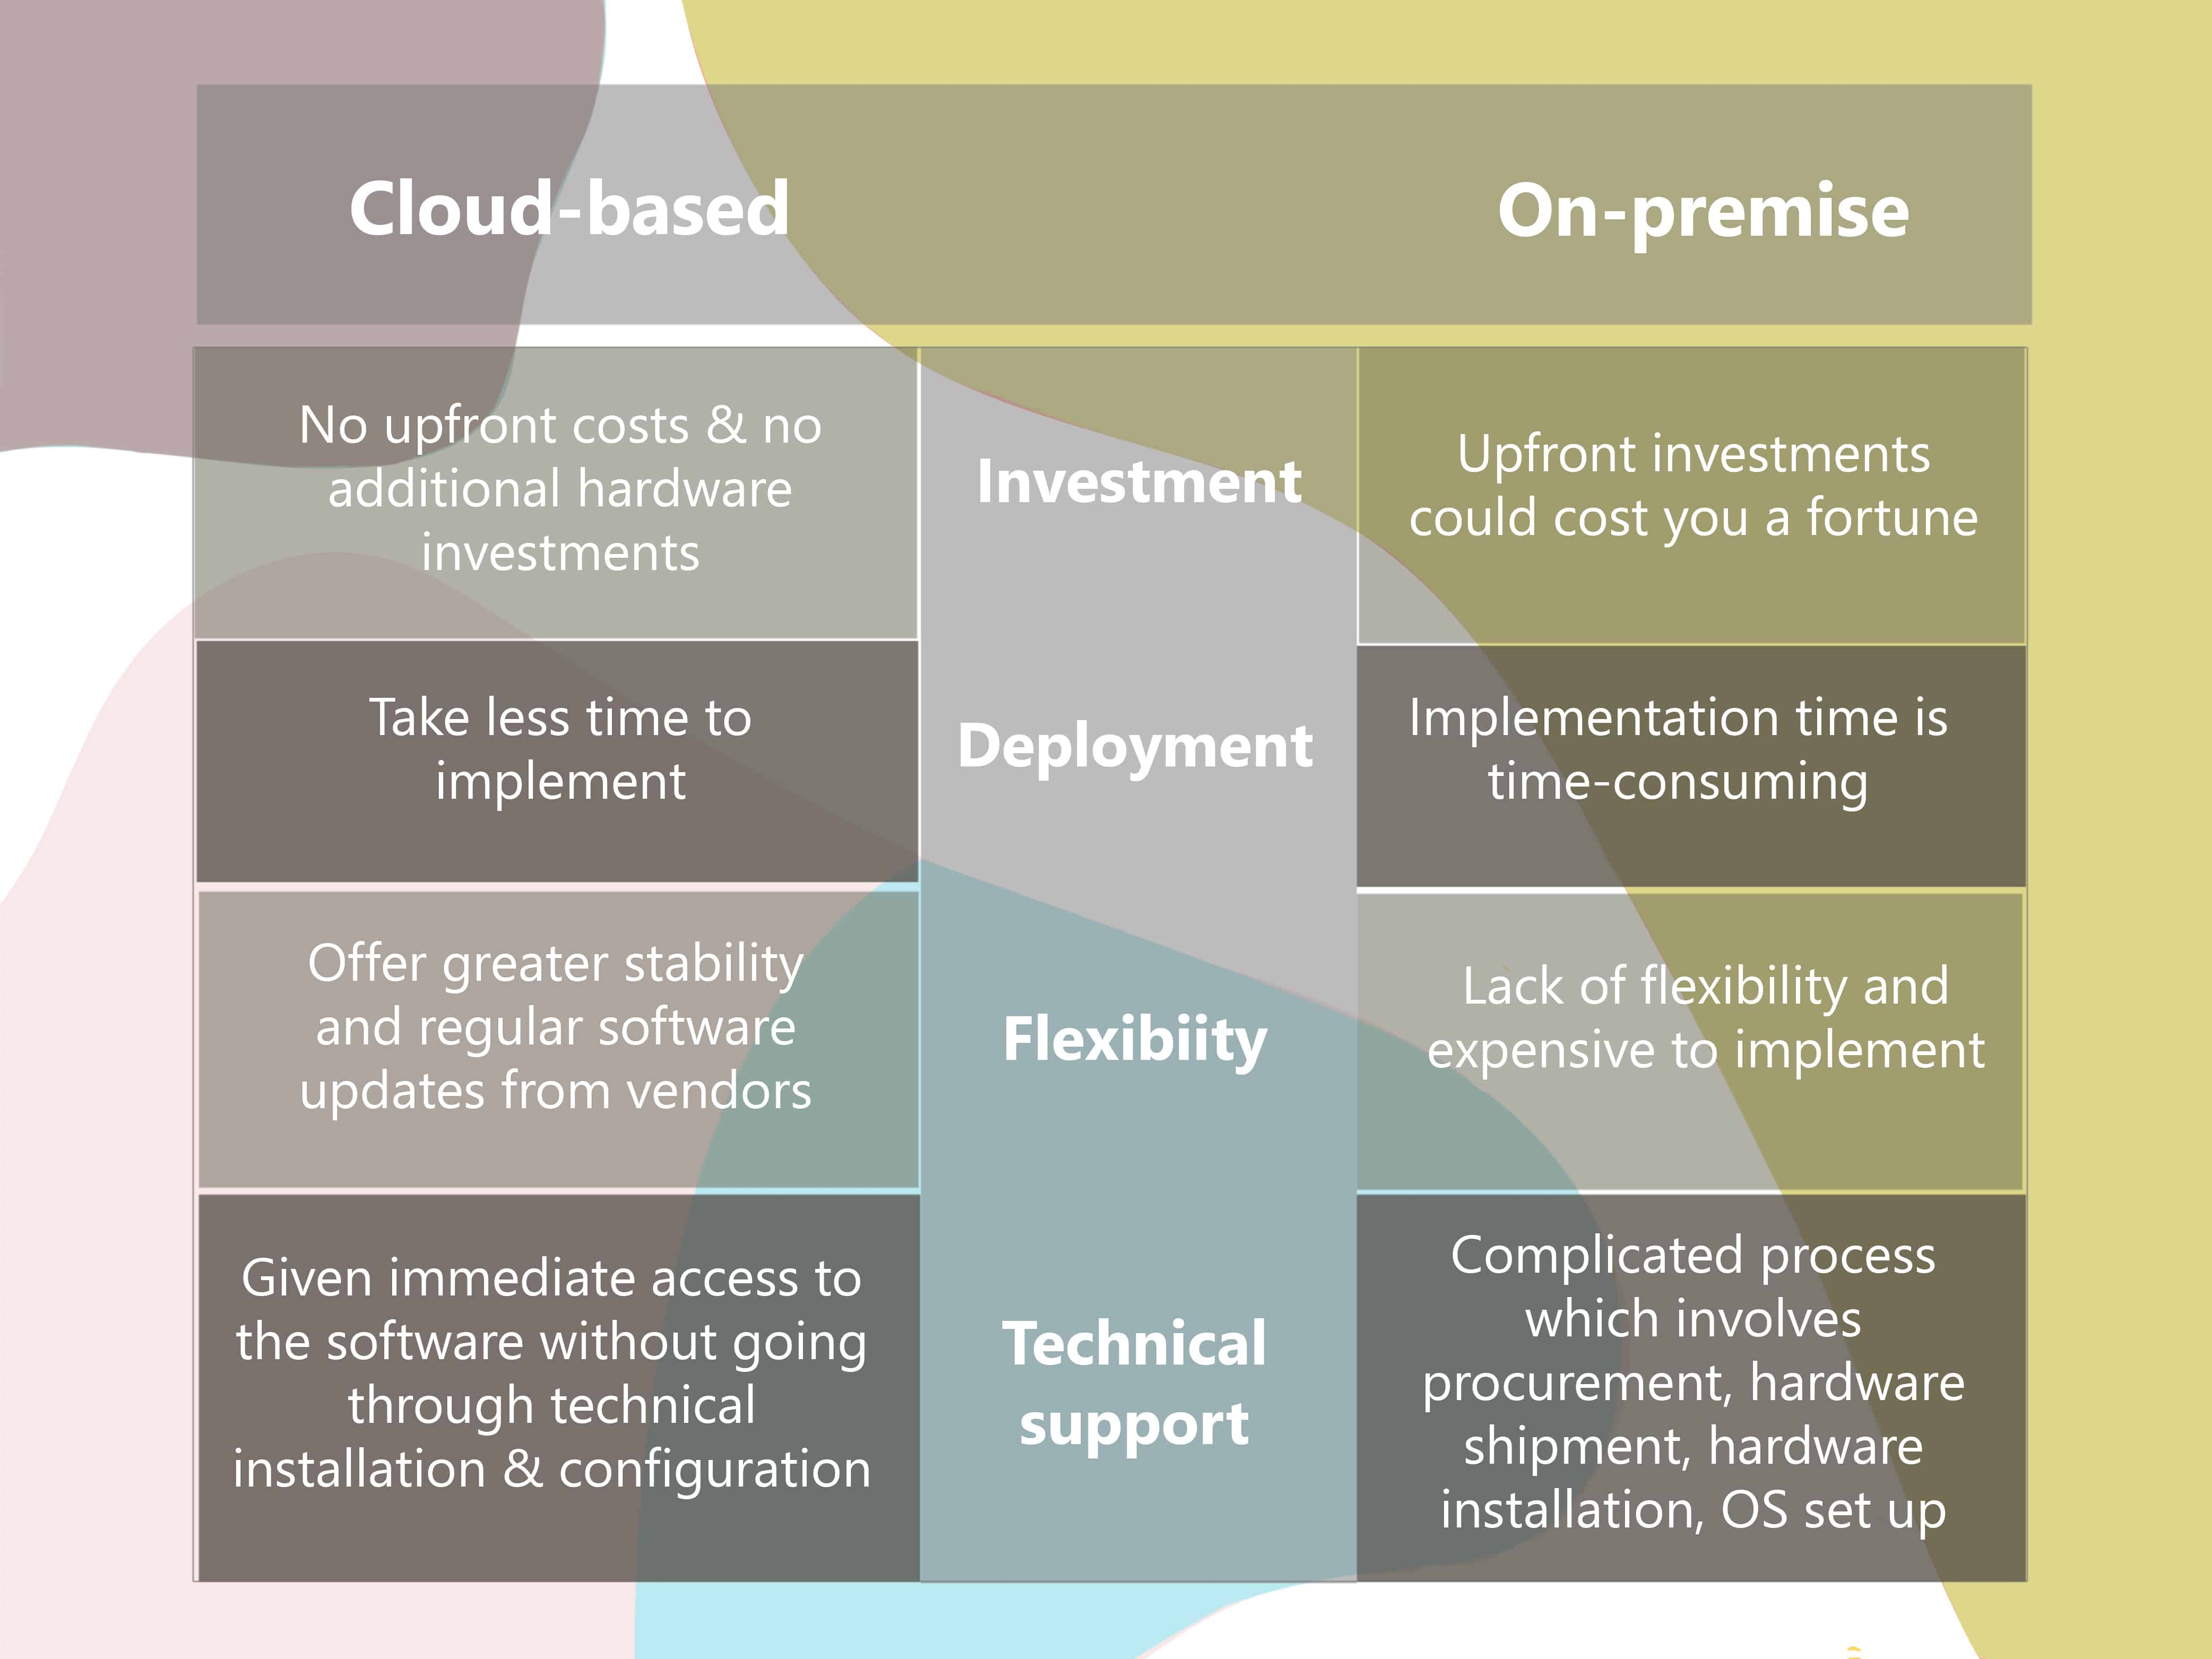 cloud is better than on-premise